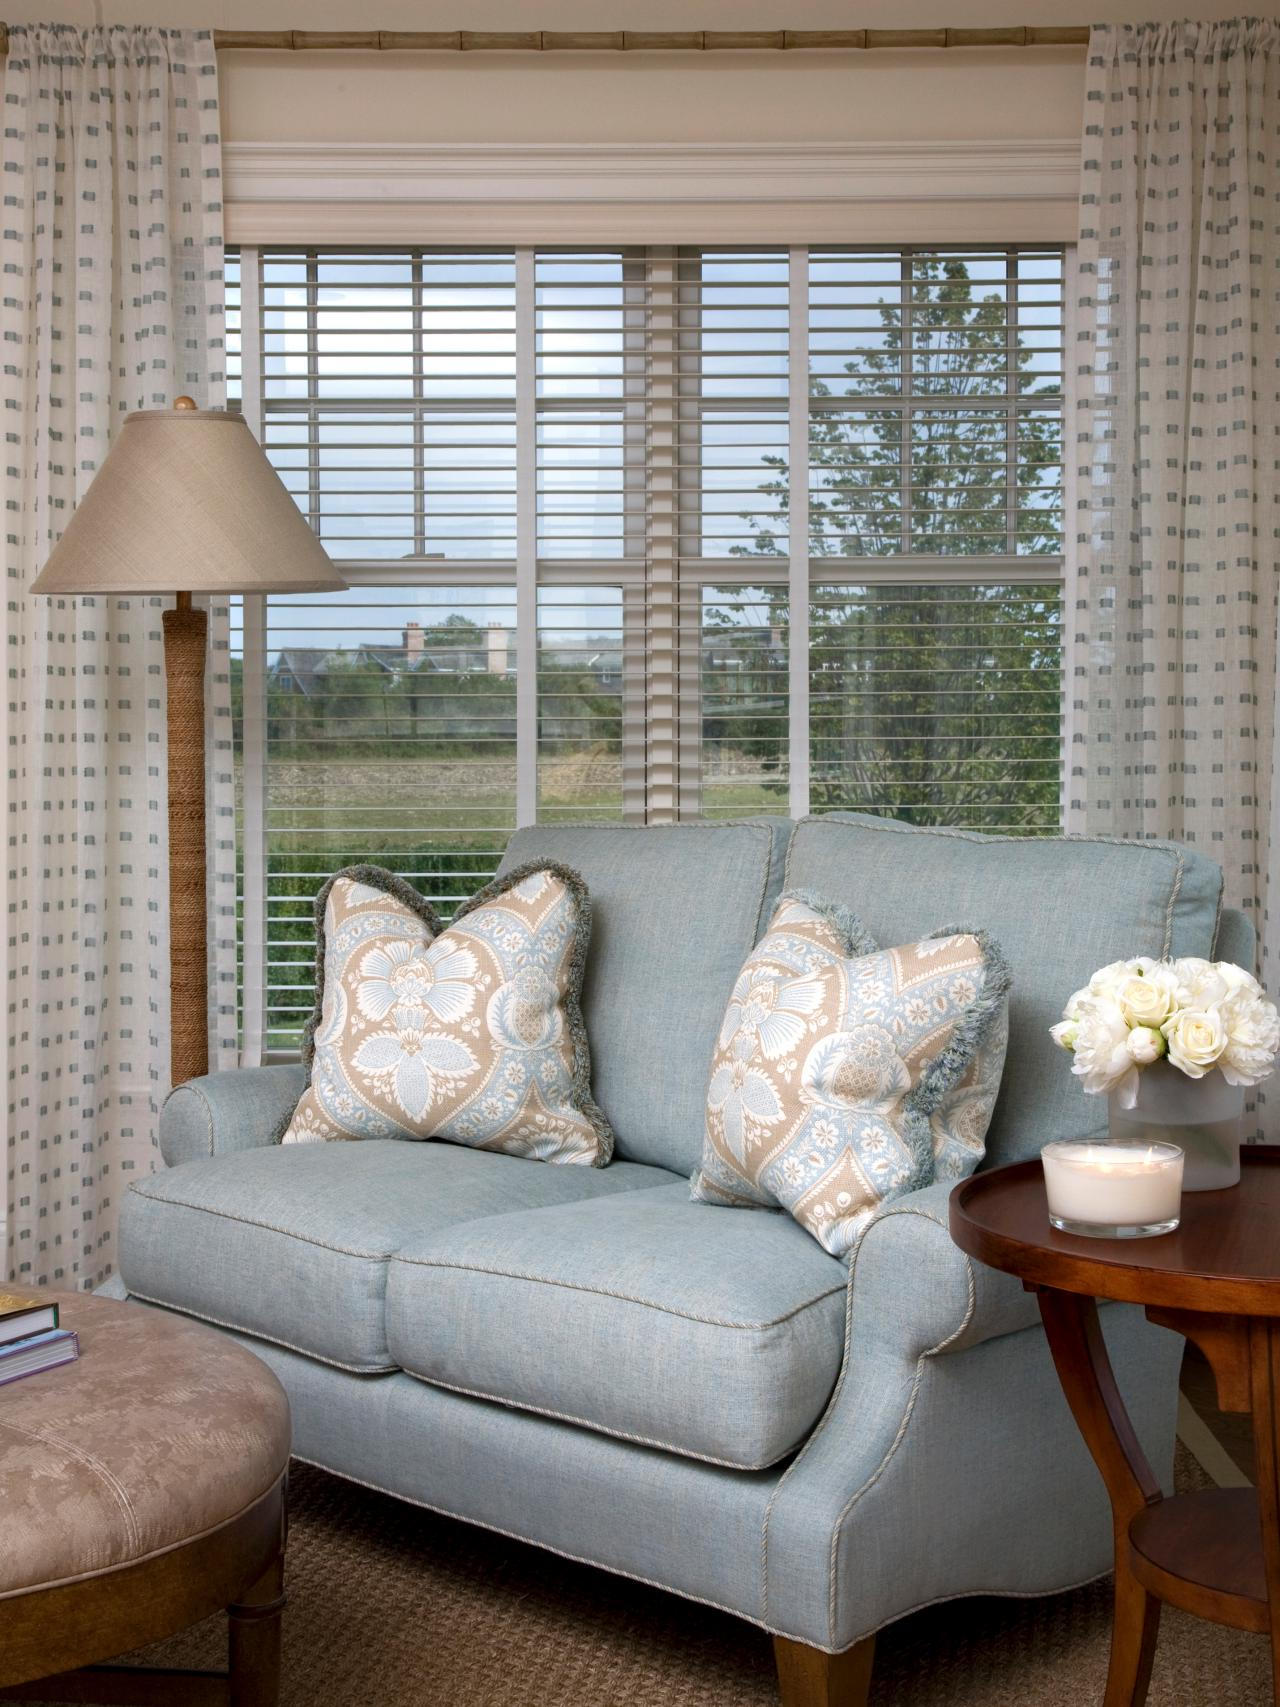 Living room window treatments ideas to decorate a living room for Contemporary window treatments for living room